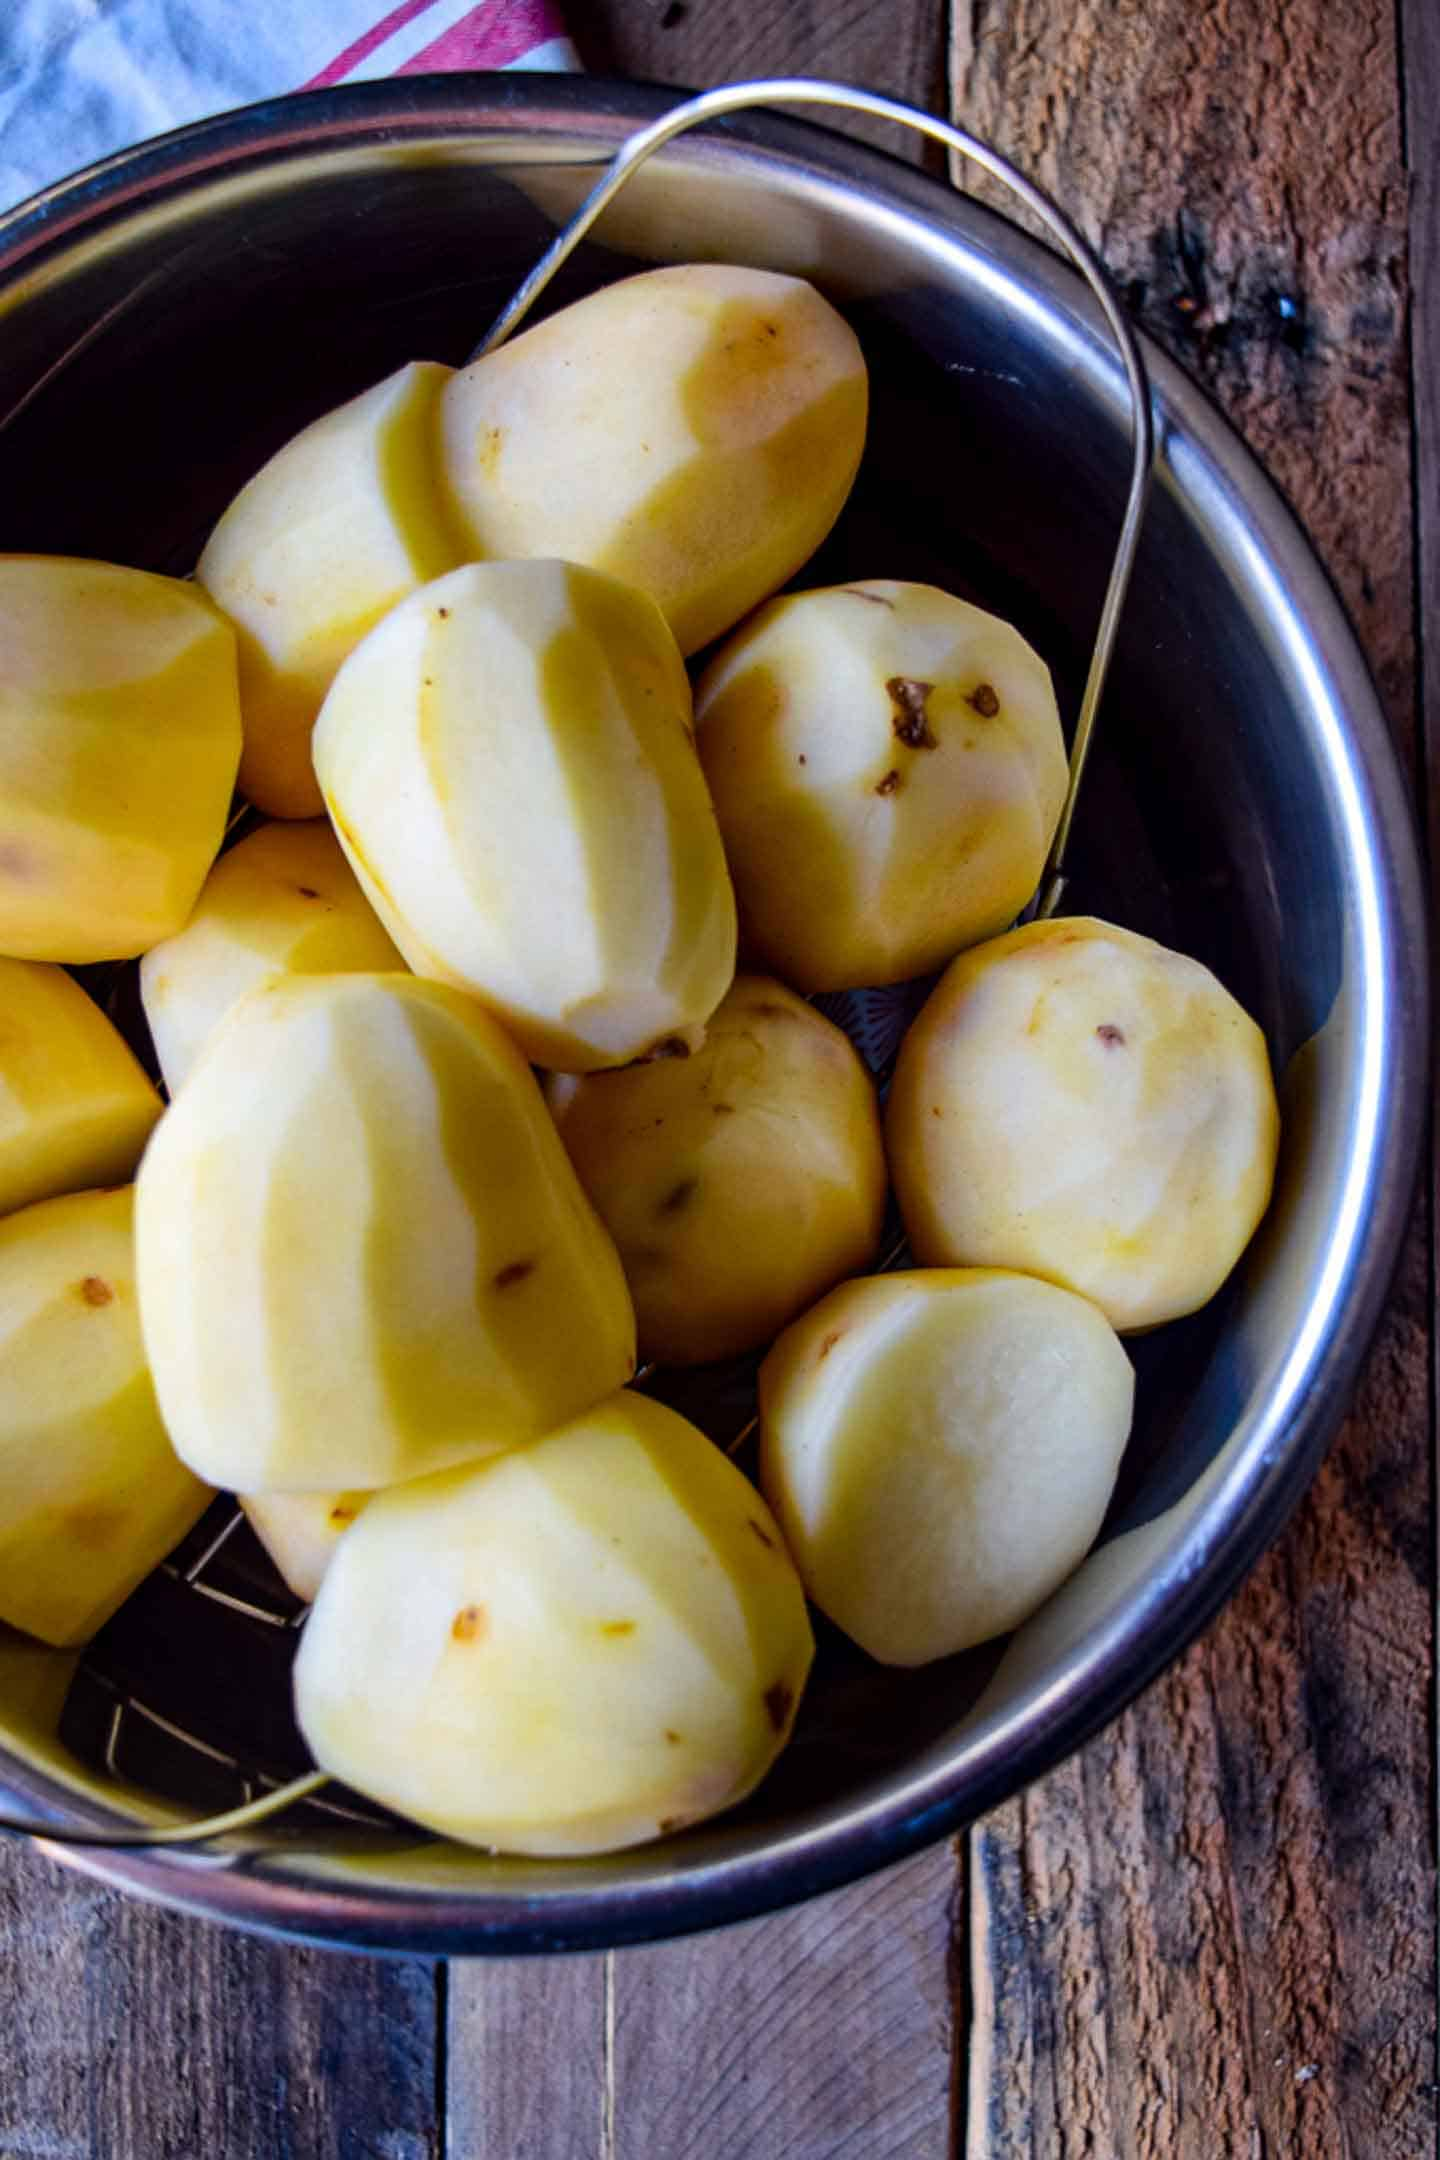 Uncooked potatoes in an Instant Pot.